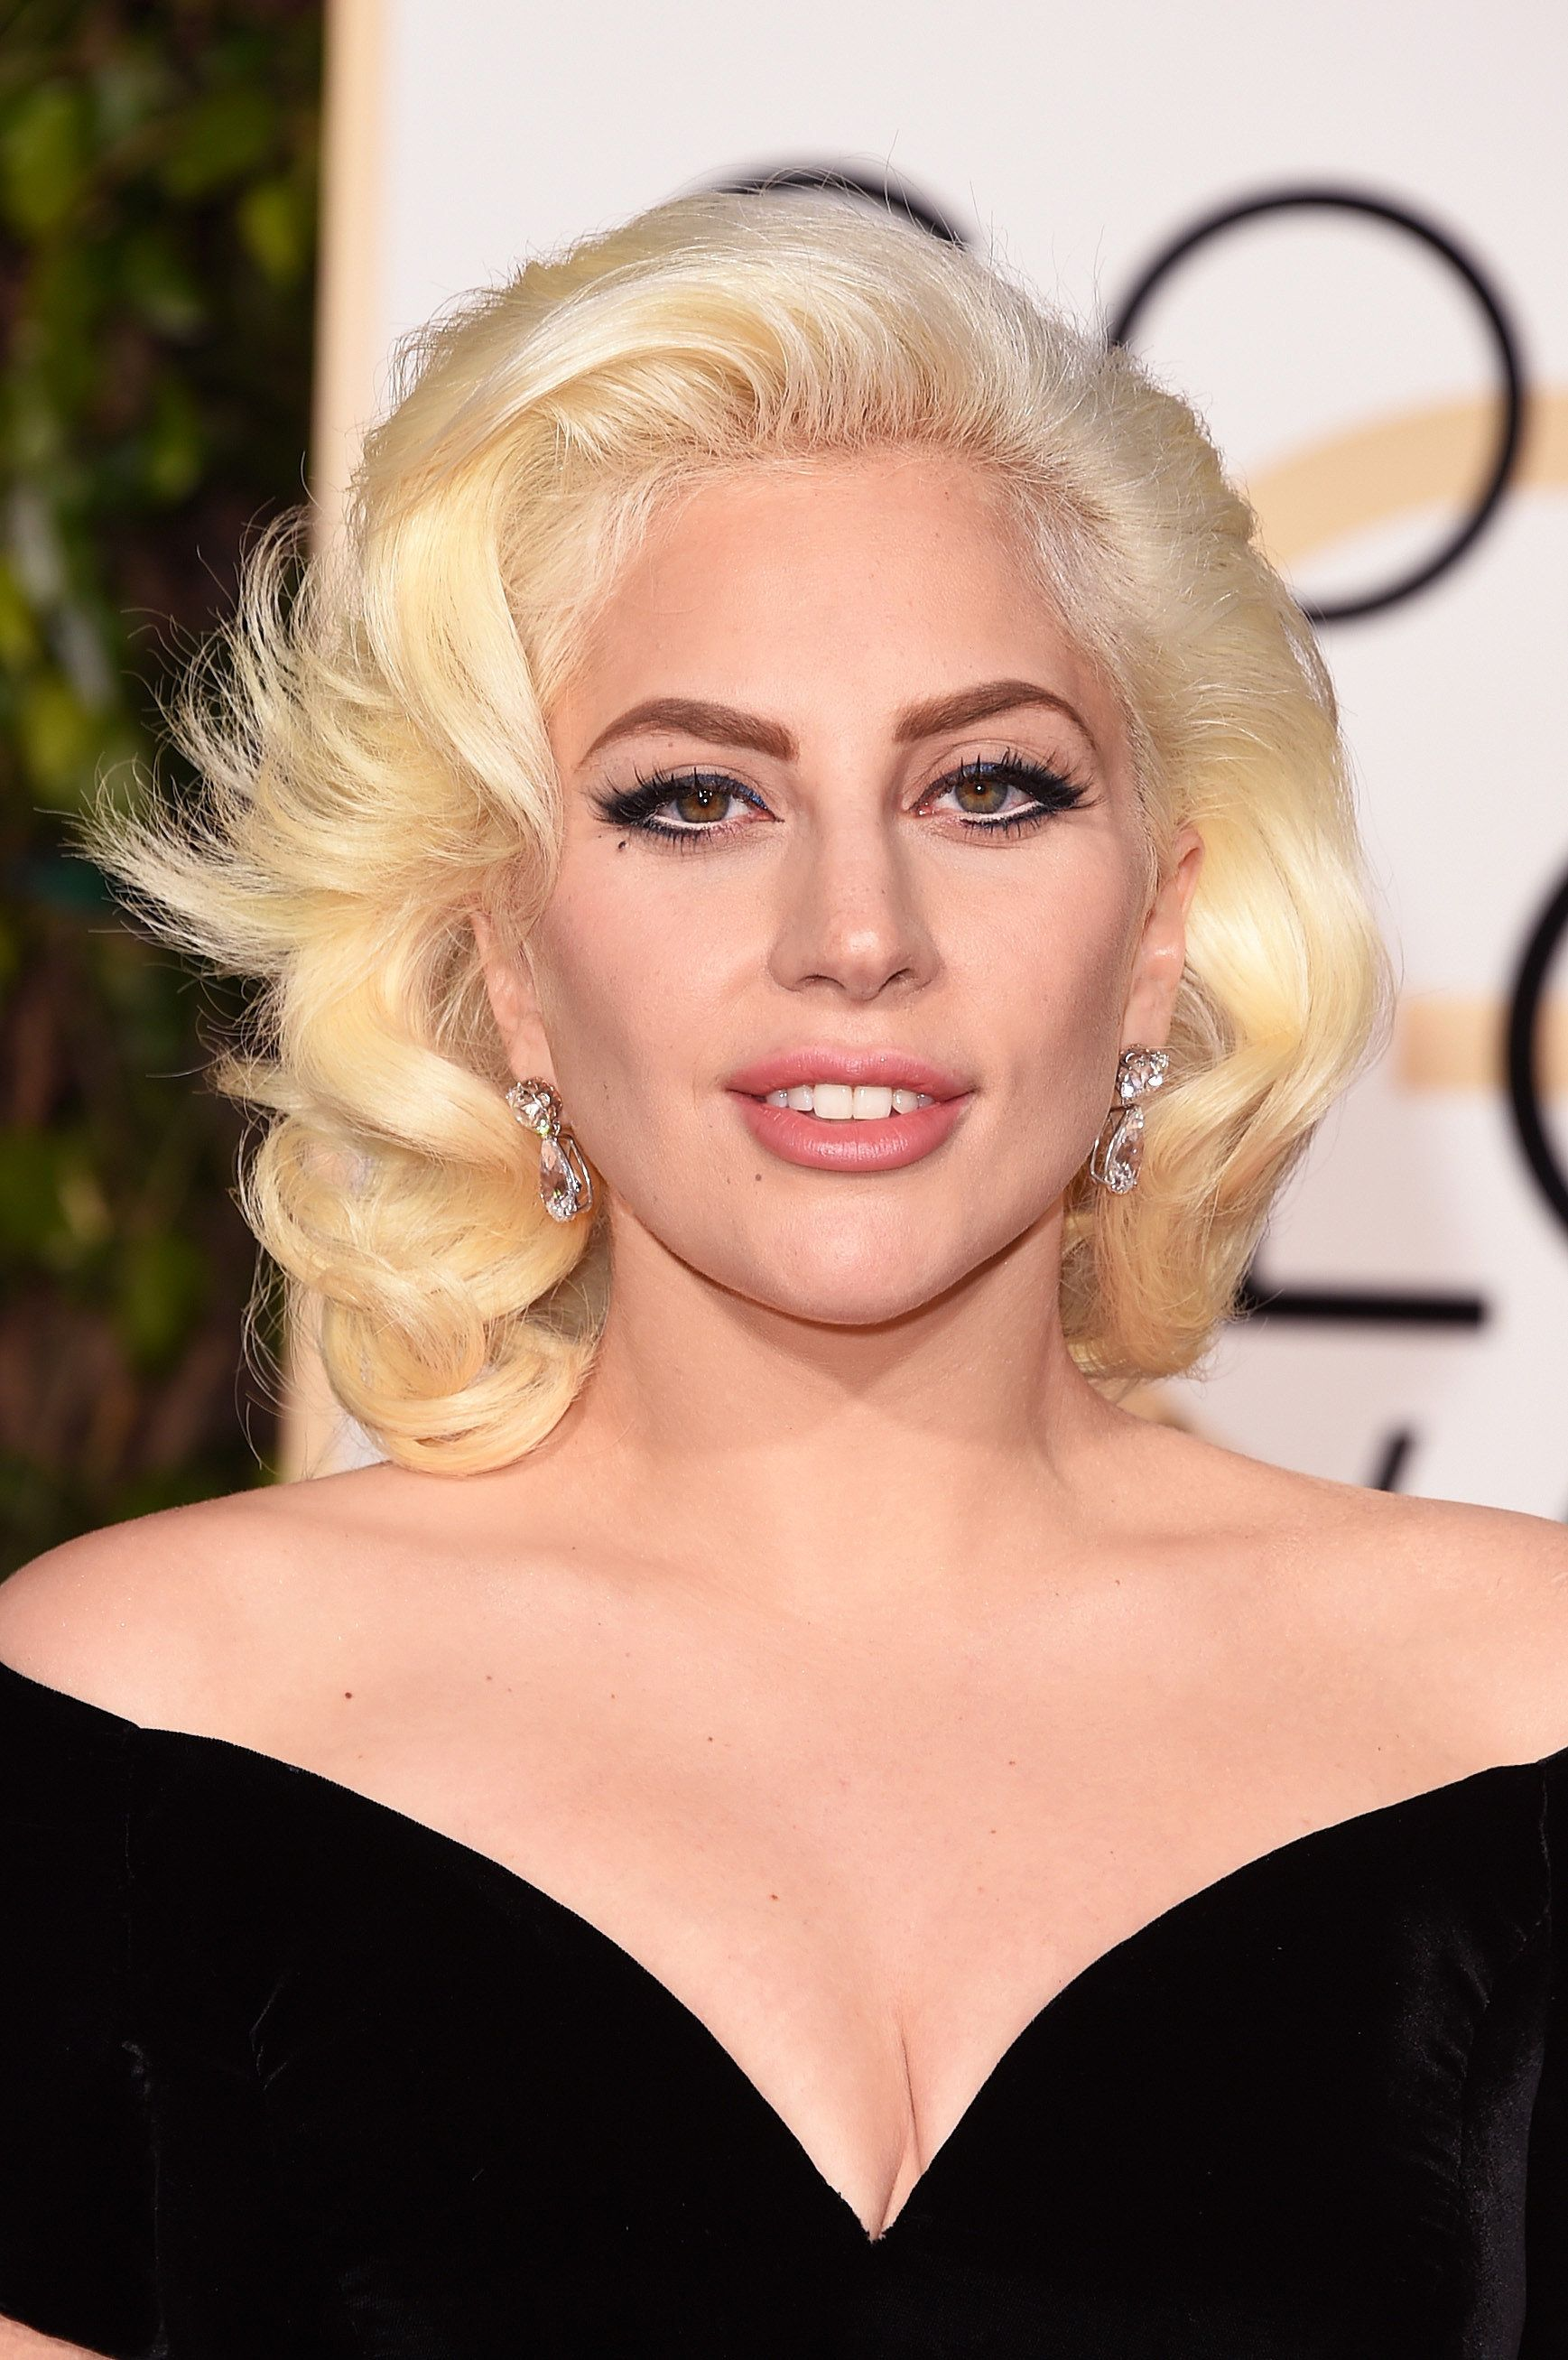 Lady Gaga Slays Yet Again With Her Red Carpet Beauty Look ...